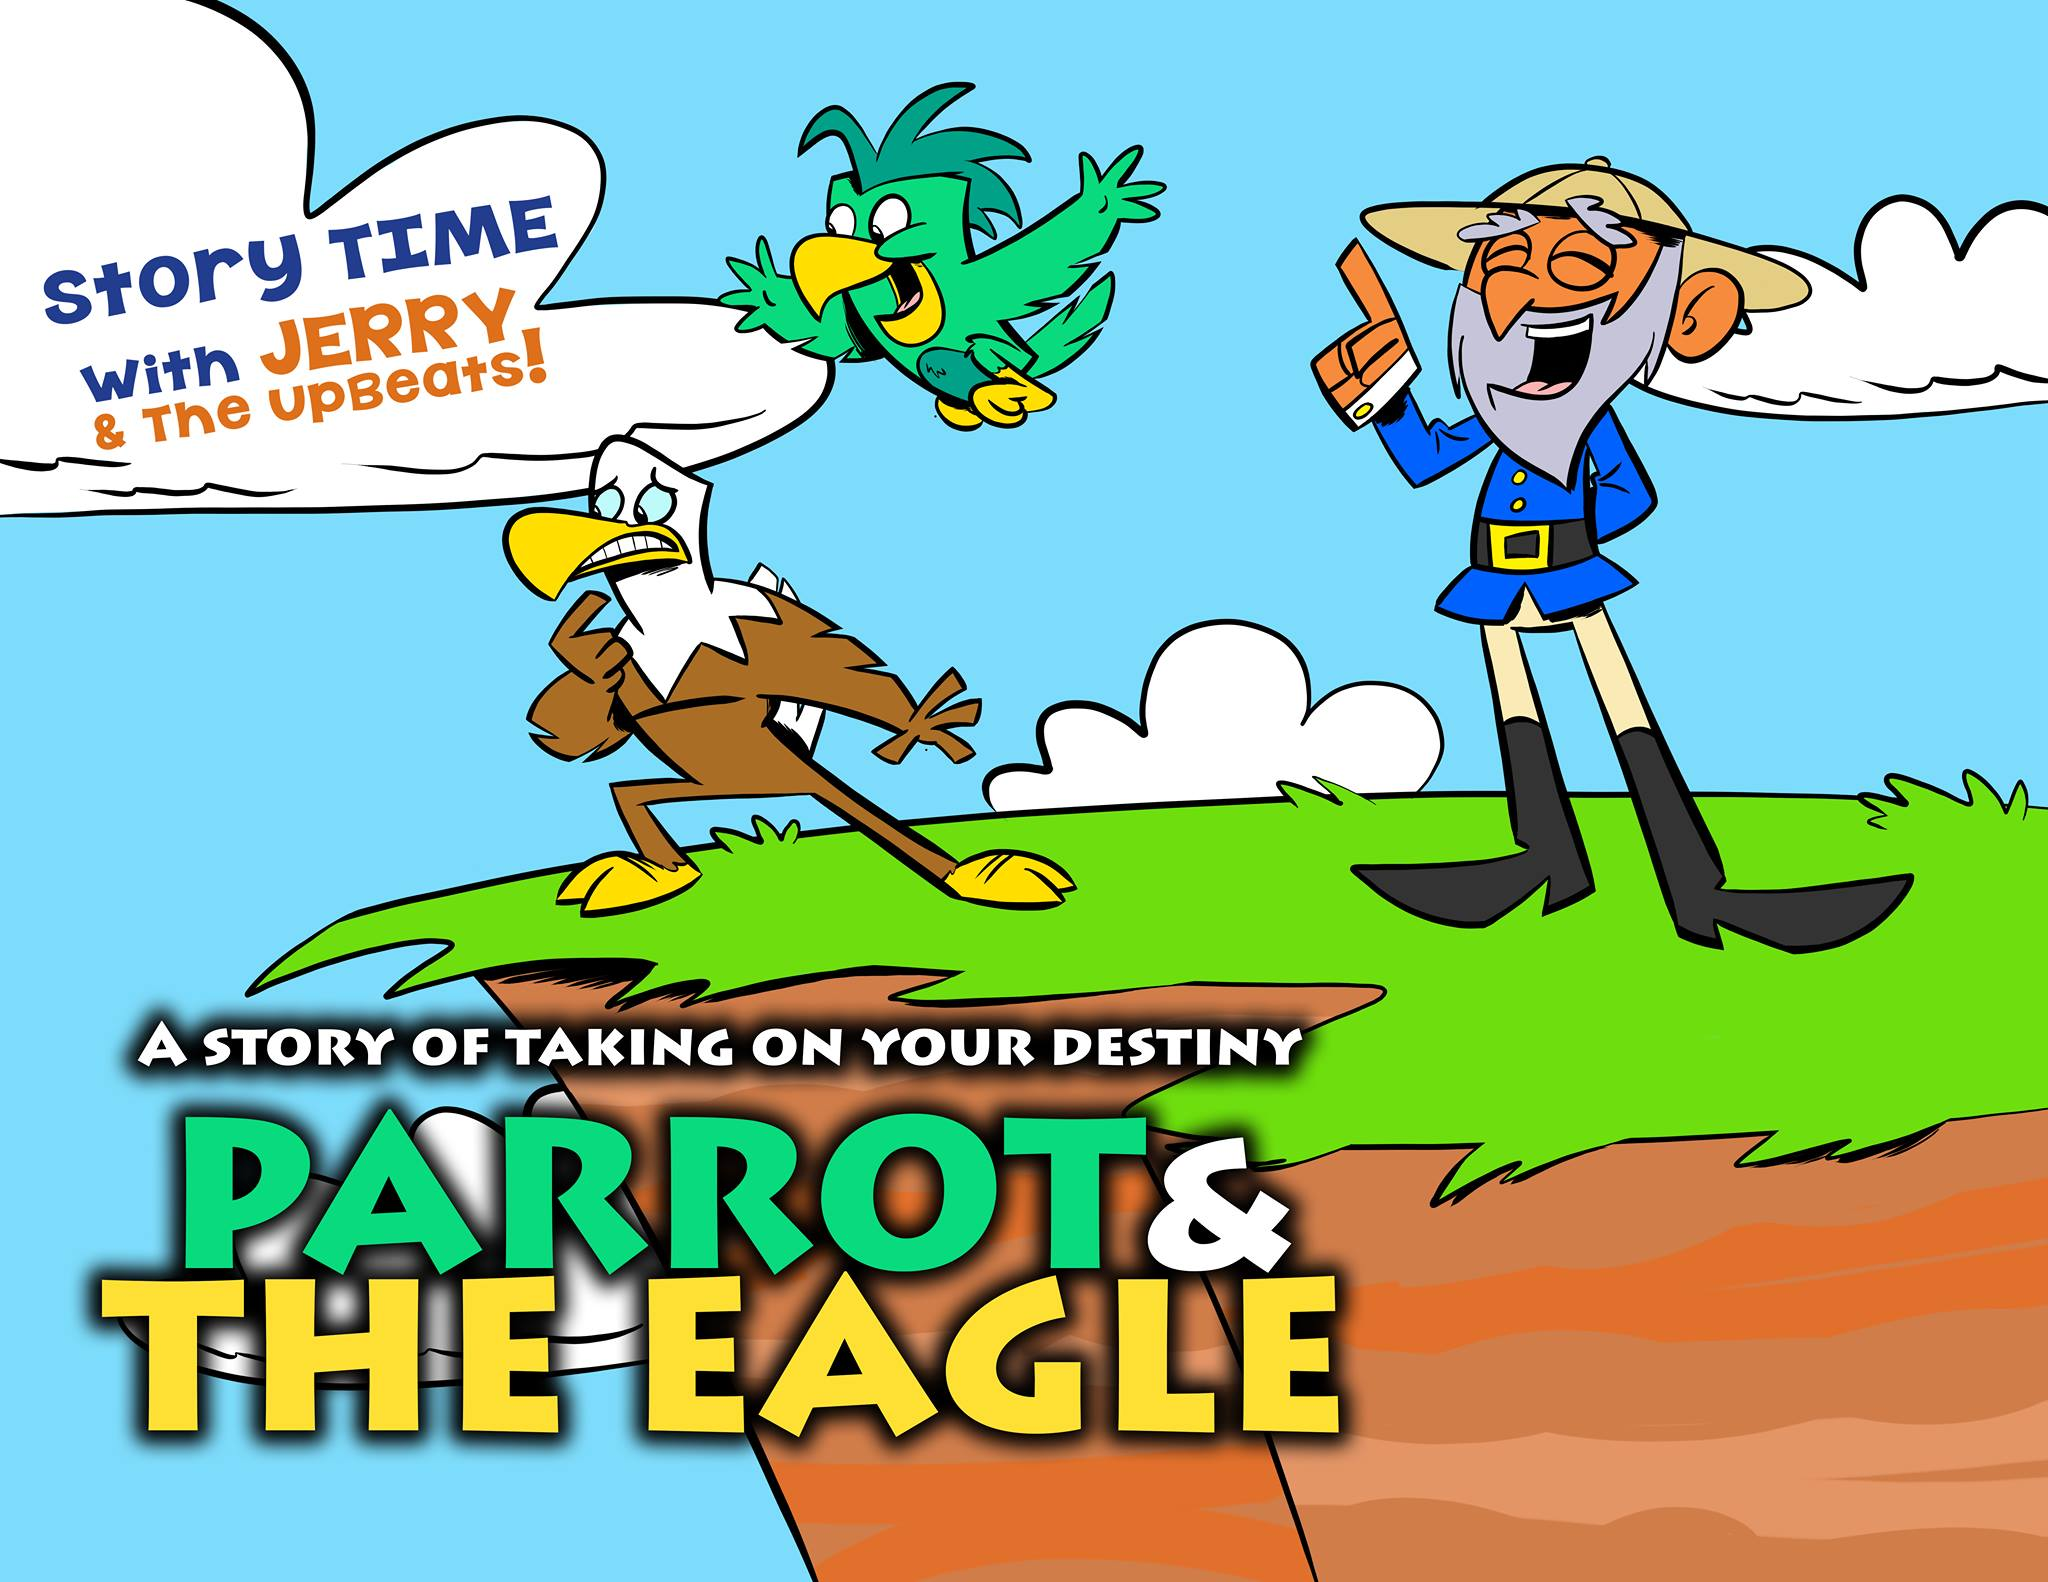 The Parrot & The Eagle